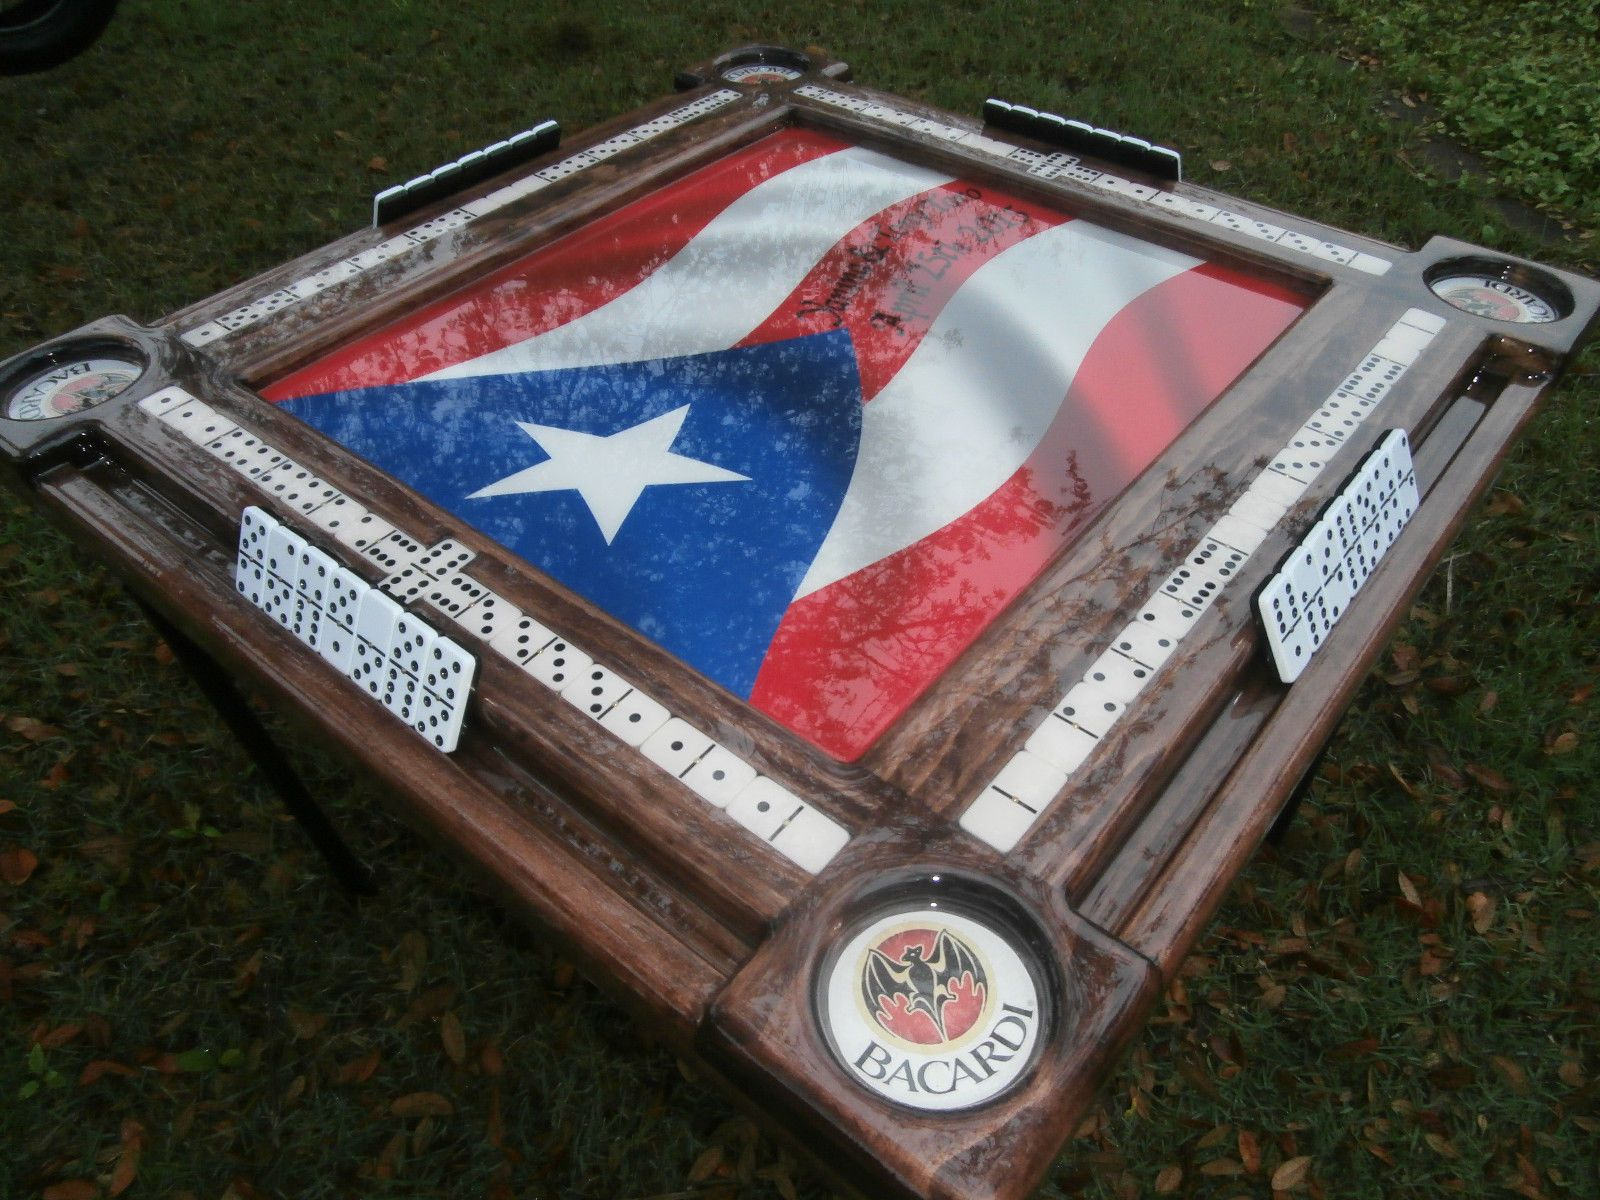 Muebles Bandera Domino Tables By Art With Puerto Rican Flag And Your Name